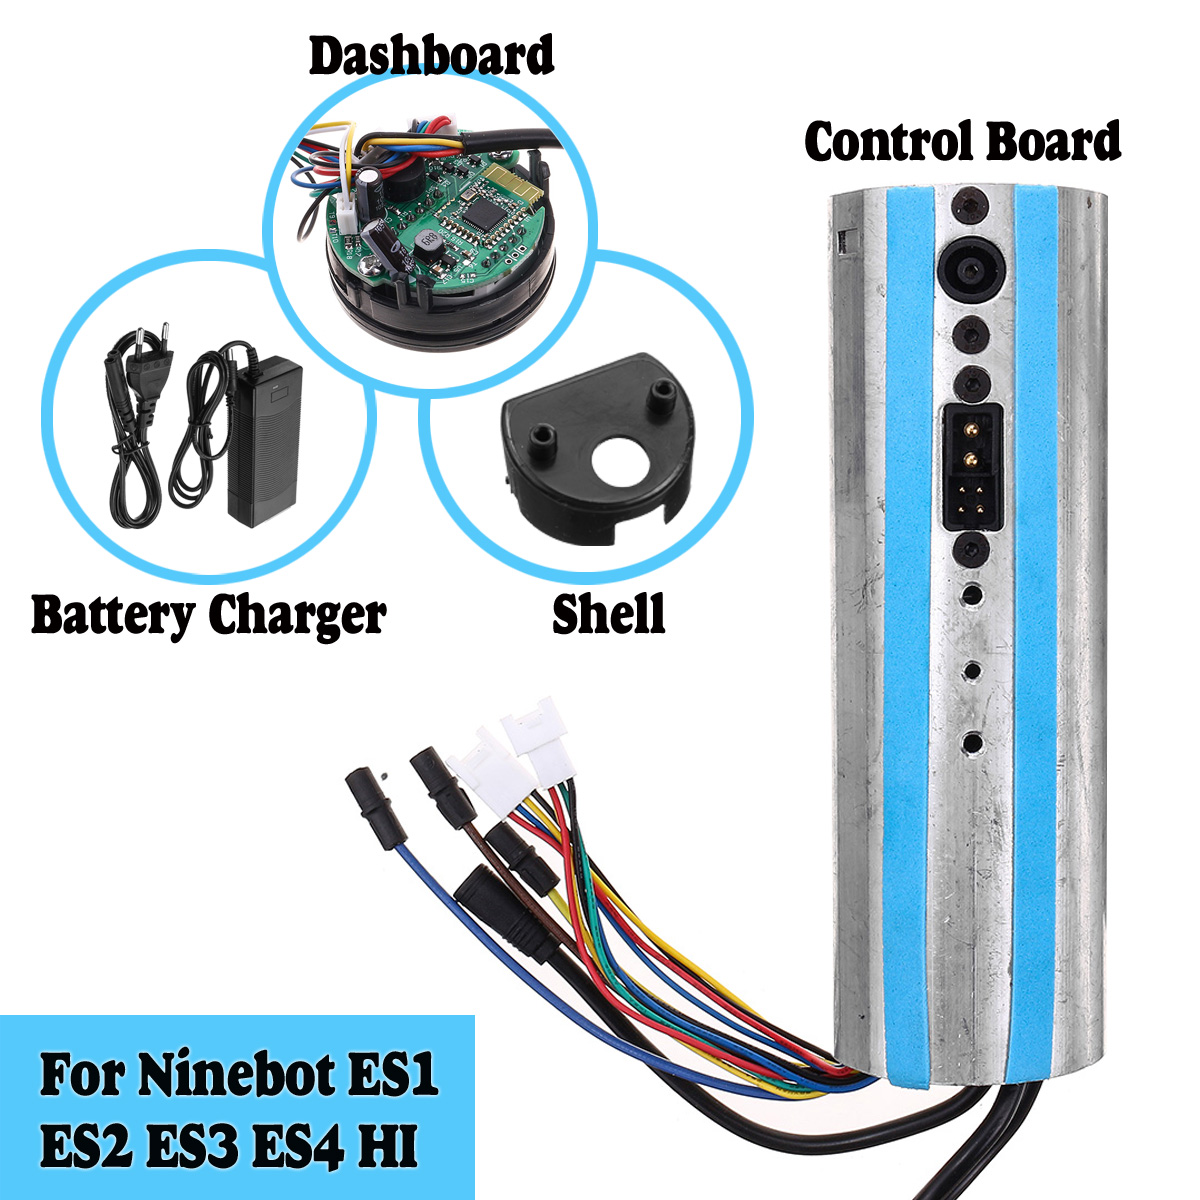 Activated bluetooth Controller Board Dashboard Charger For Ninebot ES1 ES2 ES3 ES4 Scooter